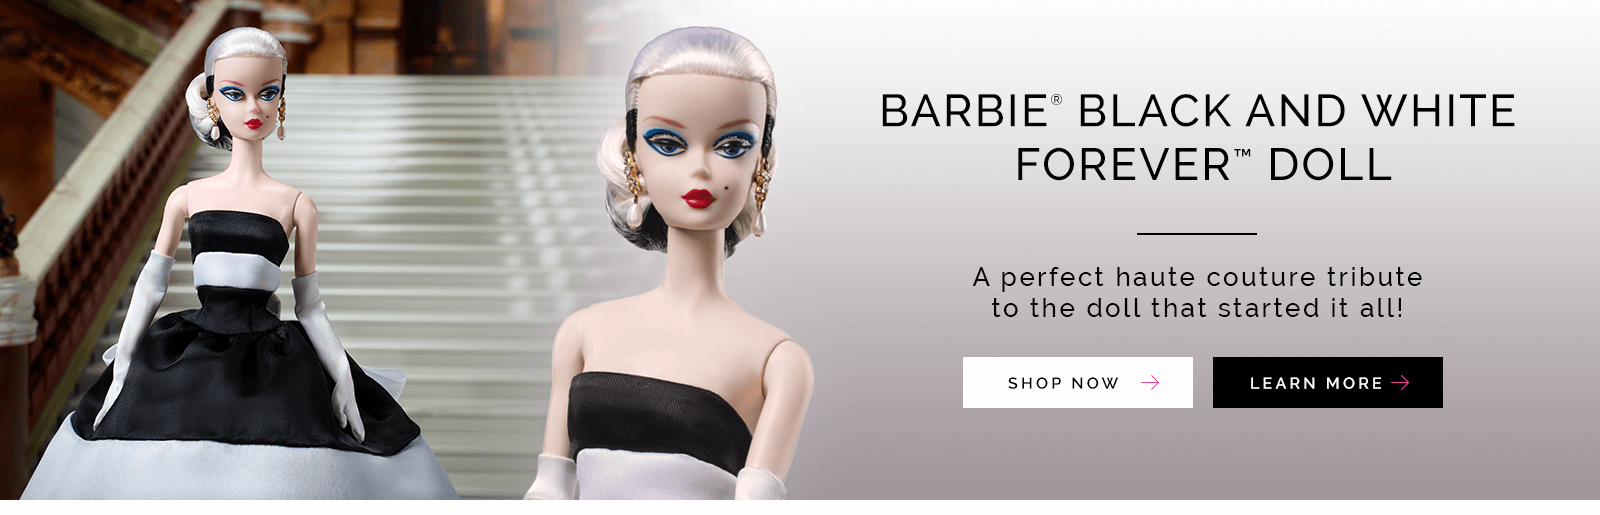 Barbie  Black and White Forever Doll